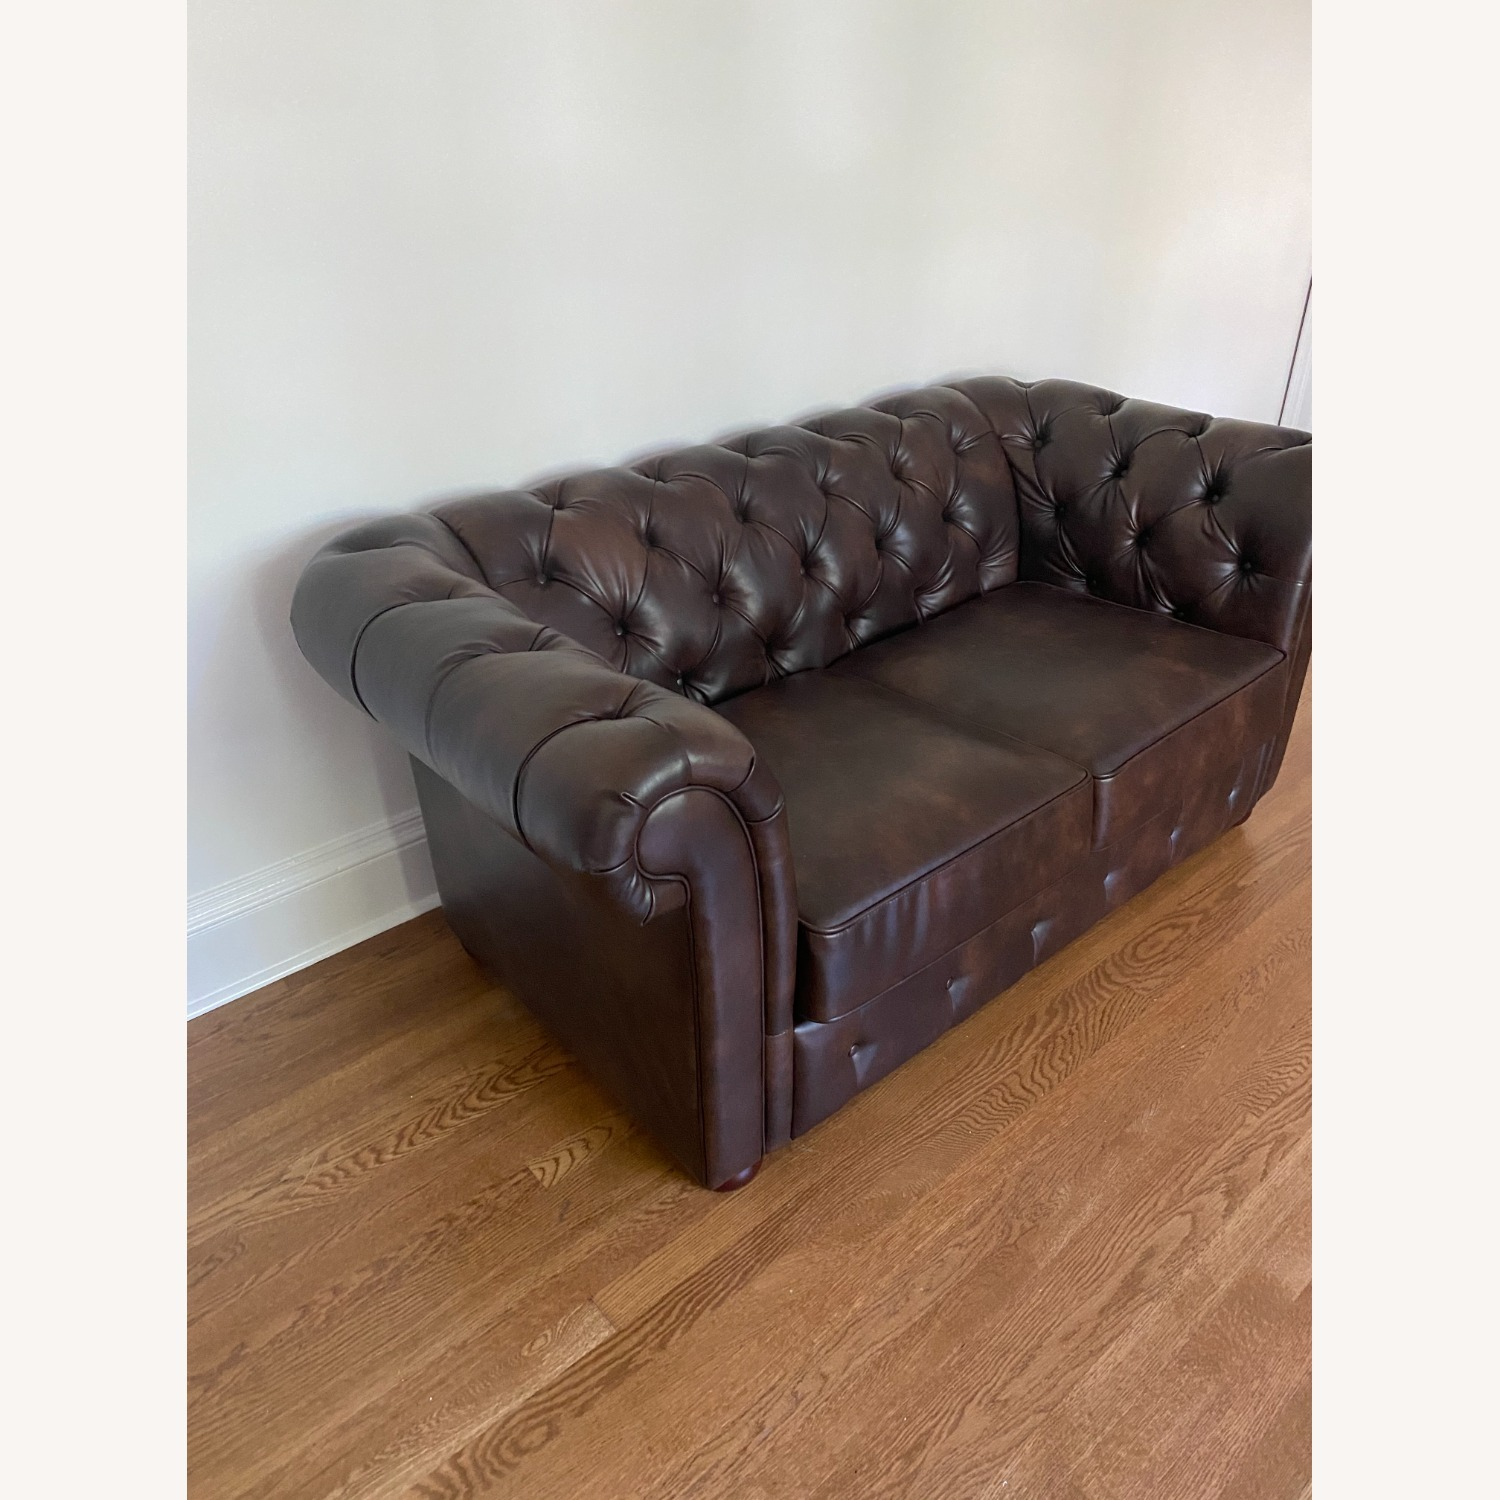 Wayfair Faux Leather Rolled Arm Loveseat - image-3